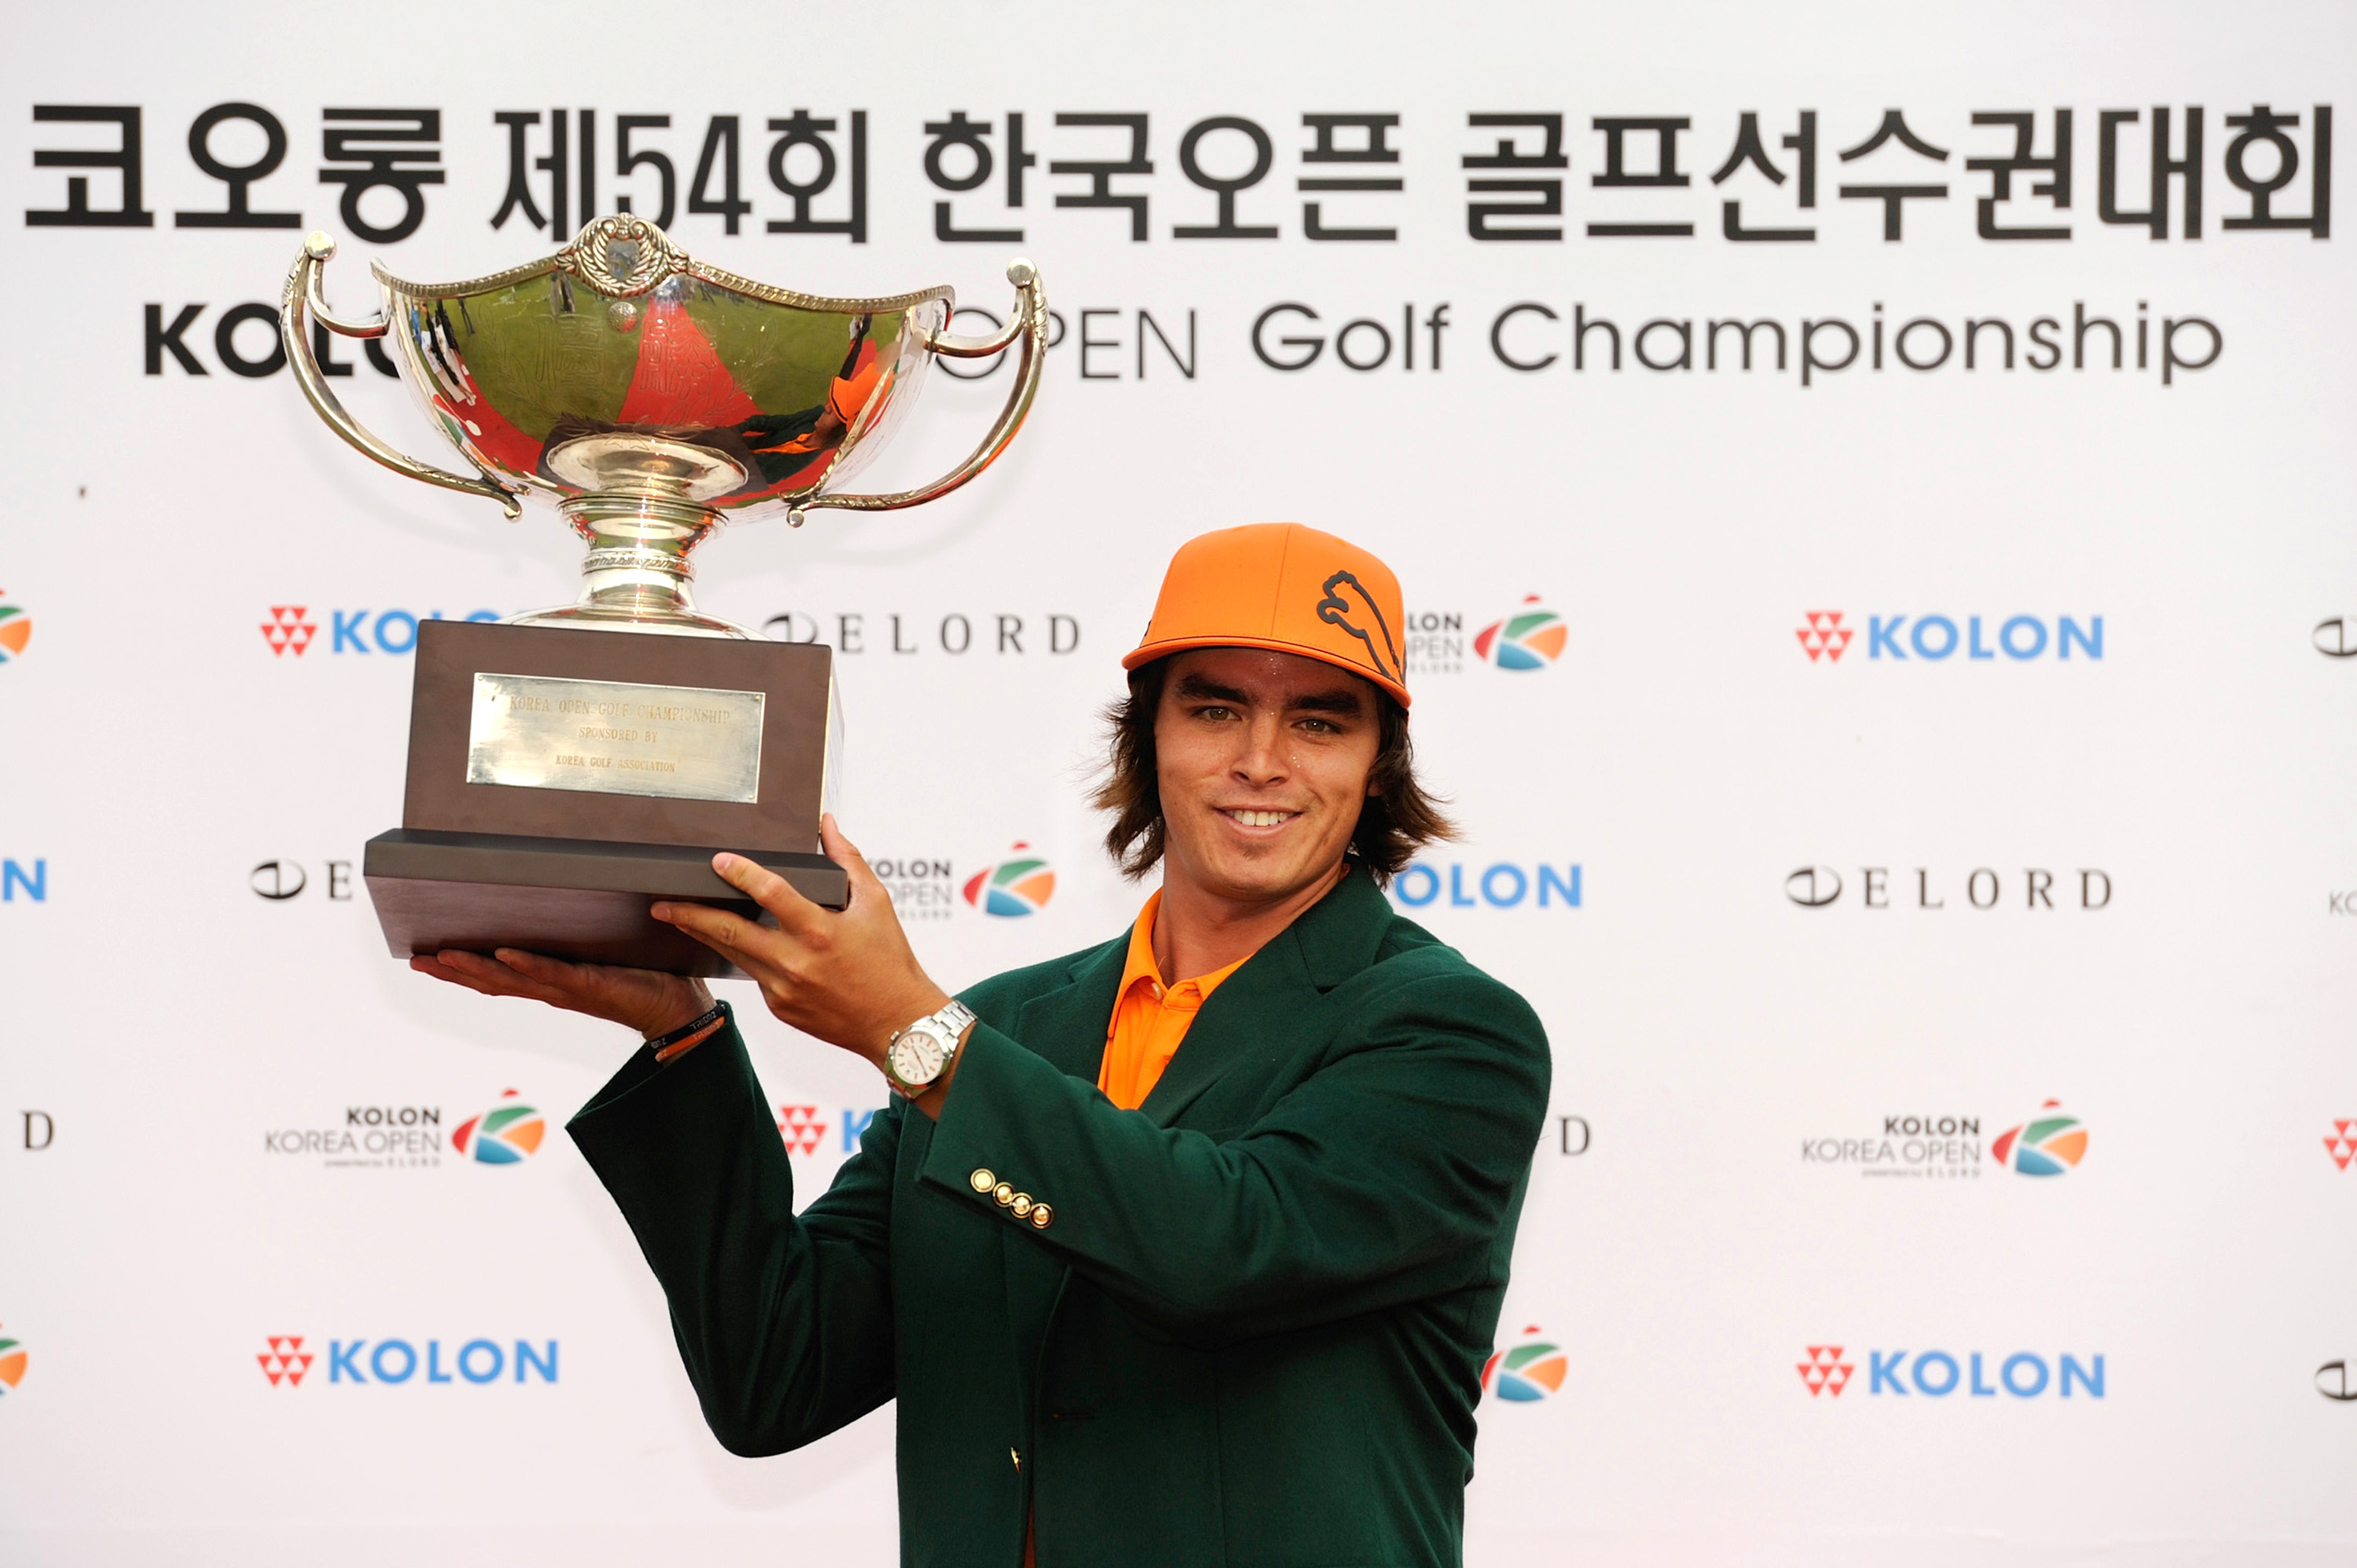 Fowler storms to maiden win at Kolon Korea Open